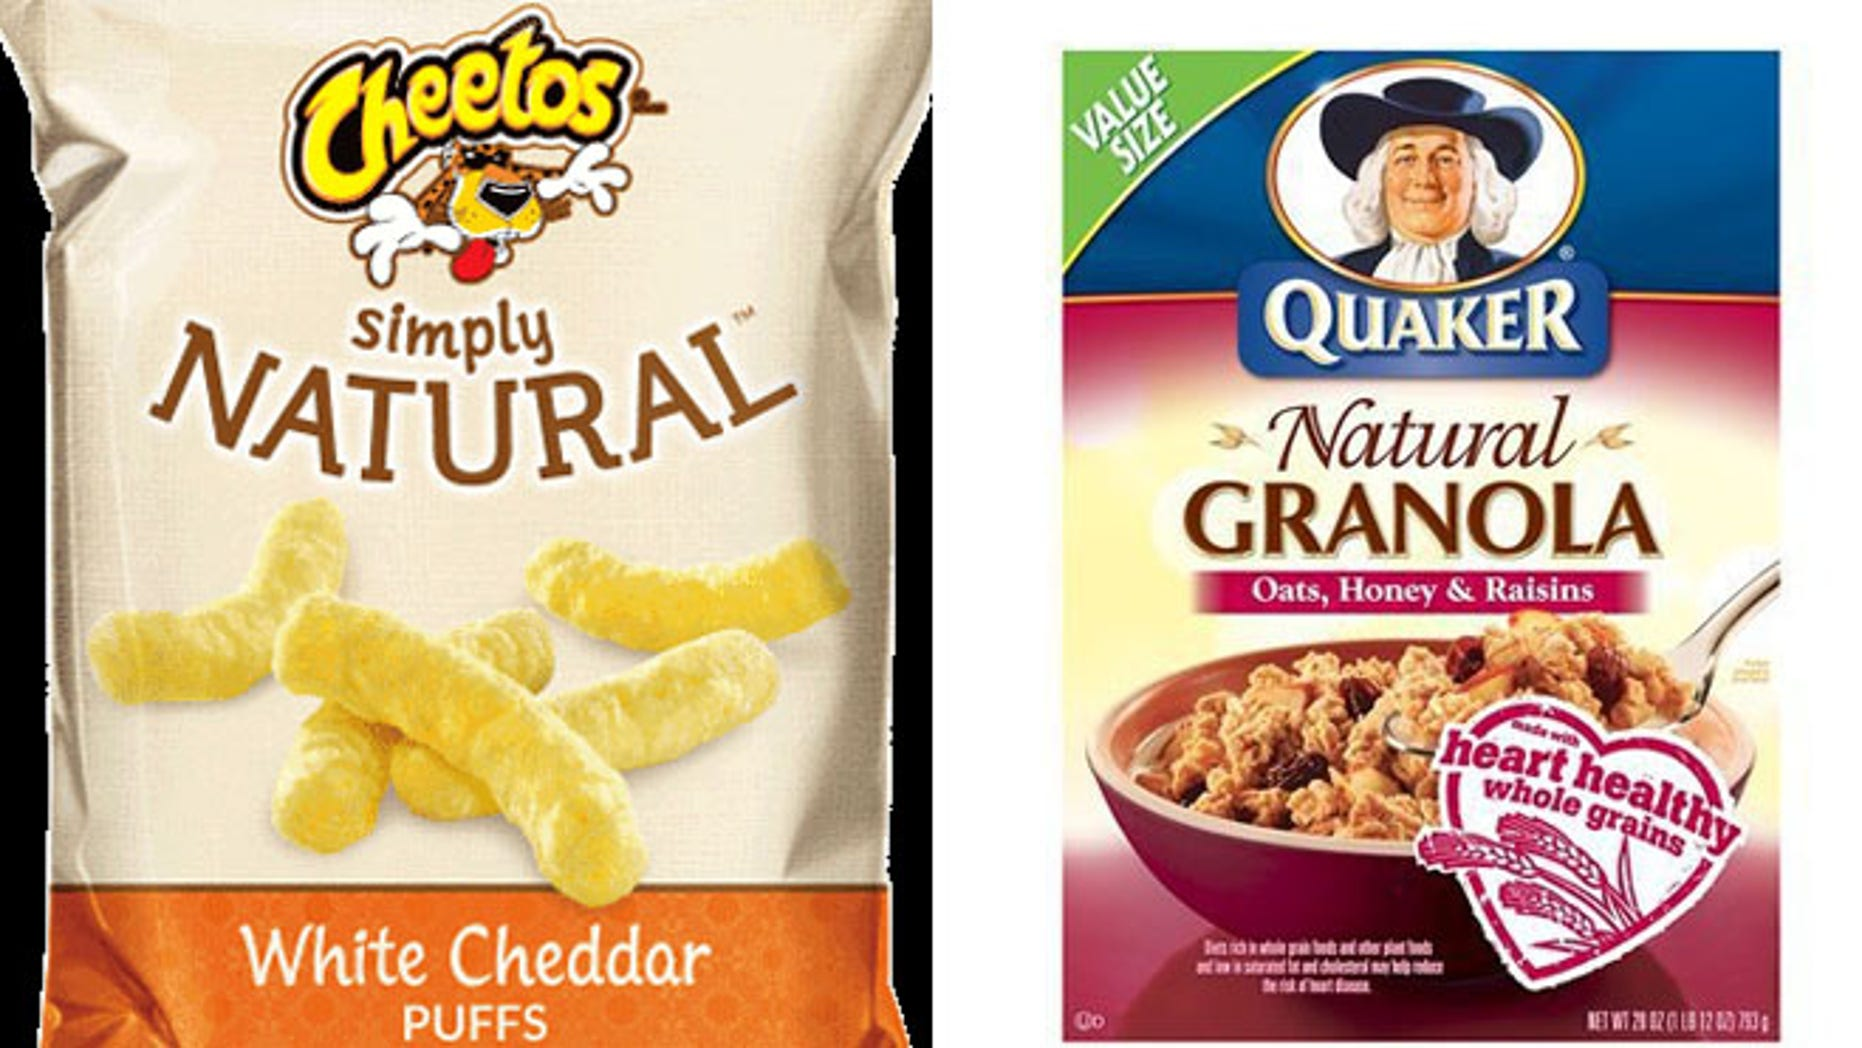 """Frito-Lay's Cheetos will simply be called """"Simply,"""" although the ingredients remain the same. Similarly, its """"Natural Quaker Granola"""" got a makeover as """"Simply Quaker Granola."""""""